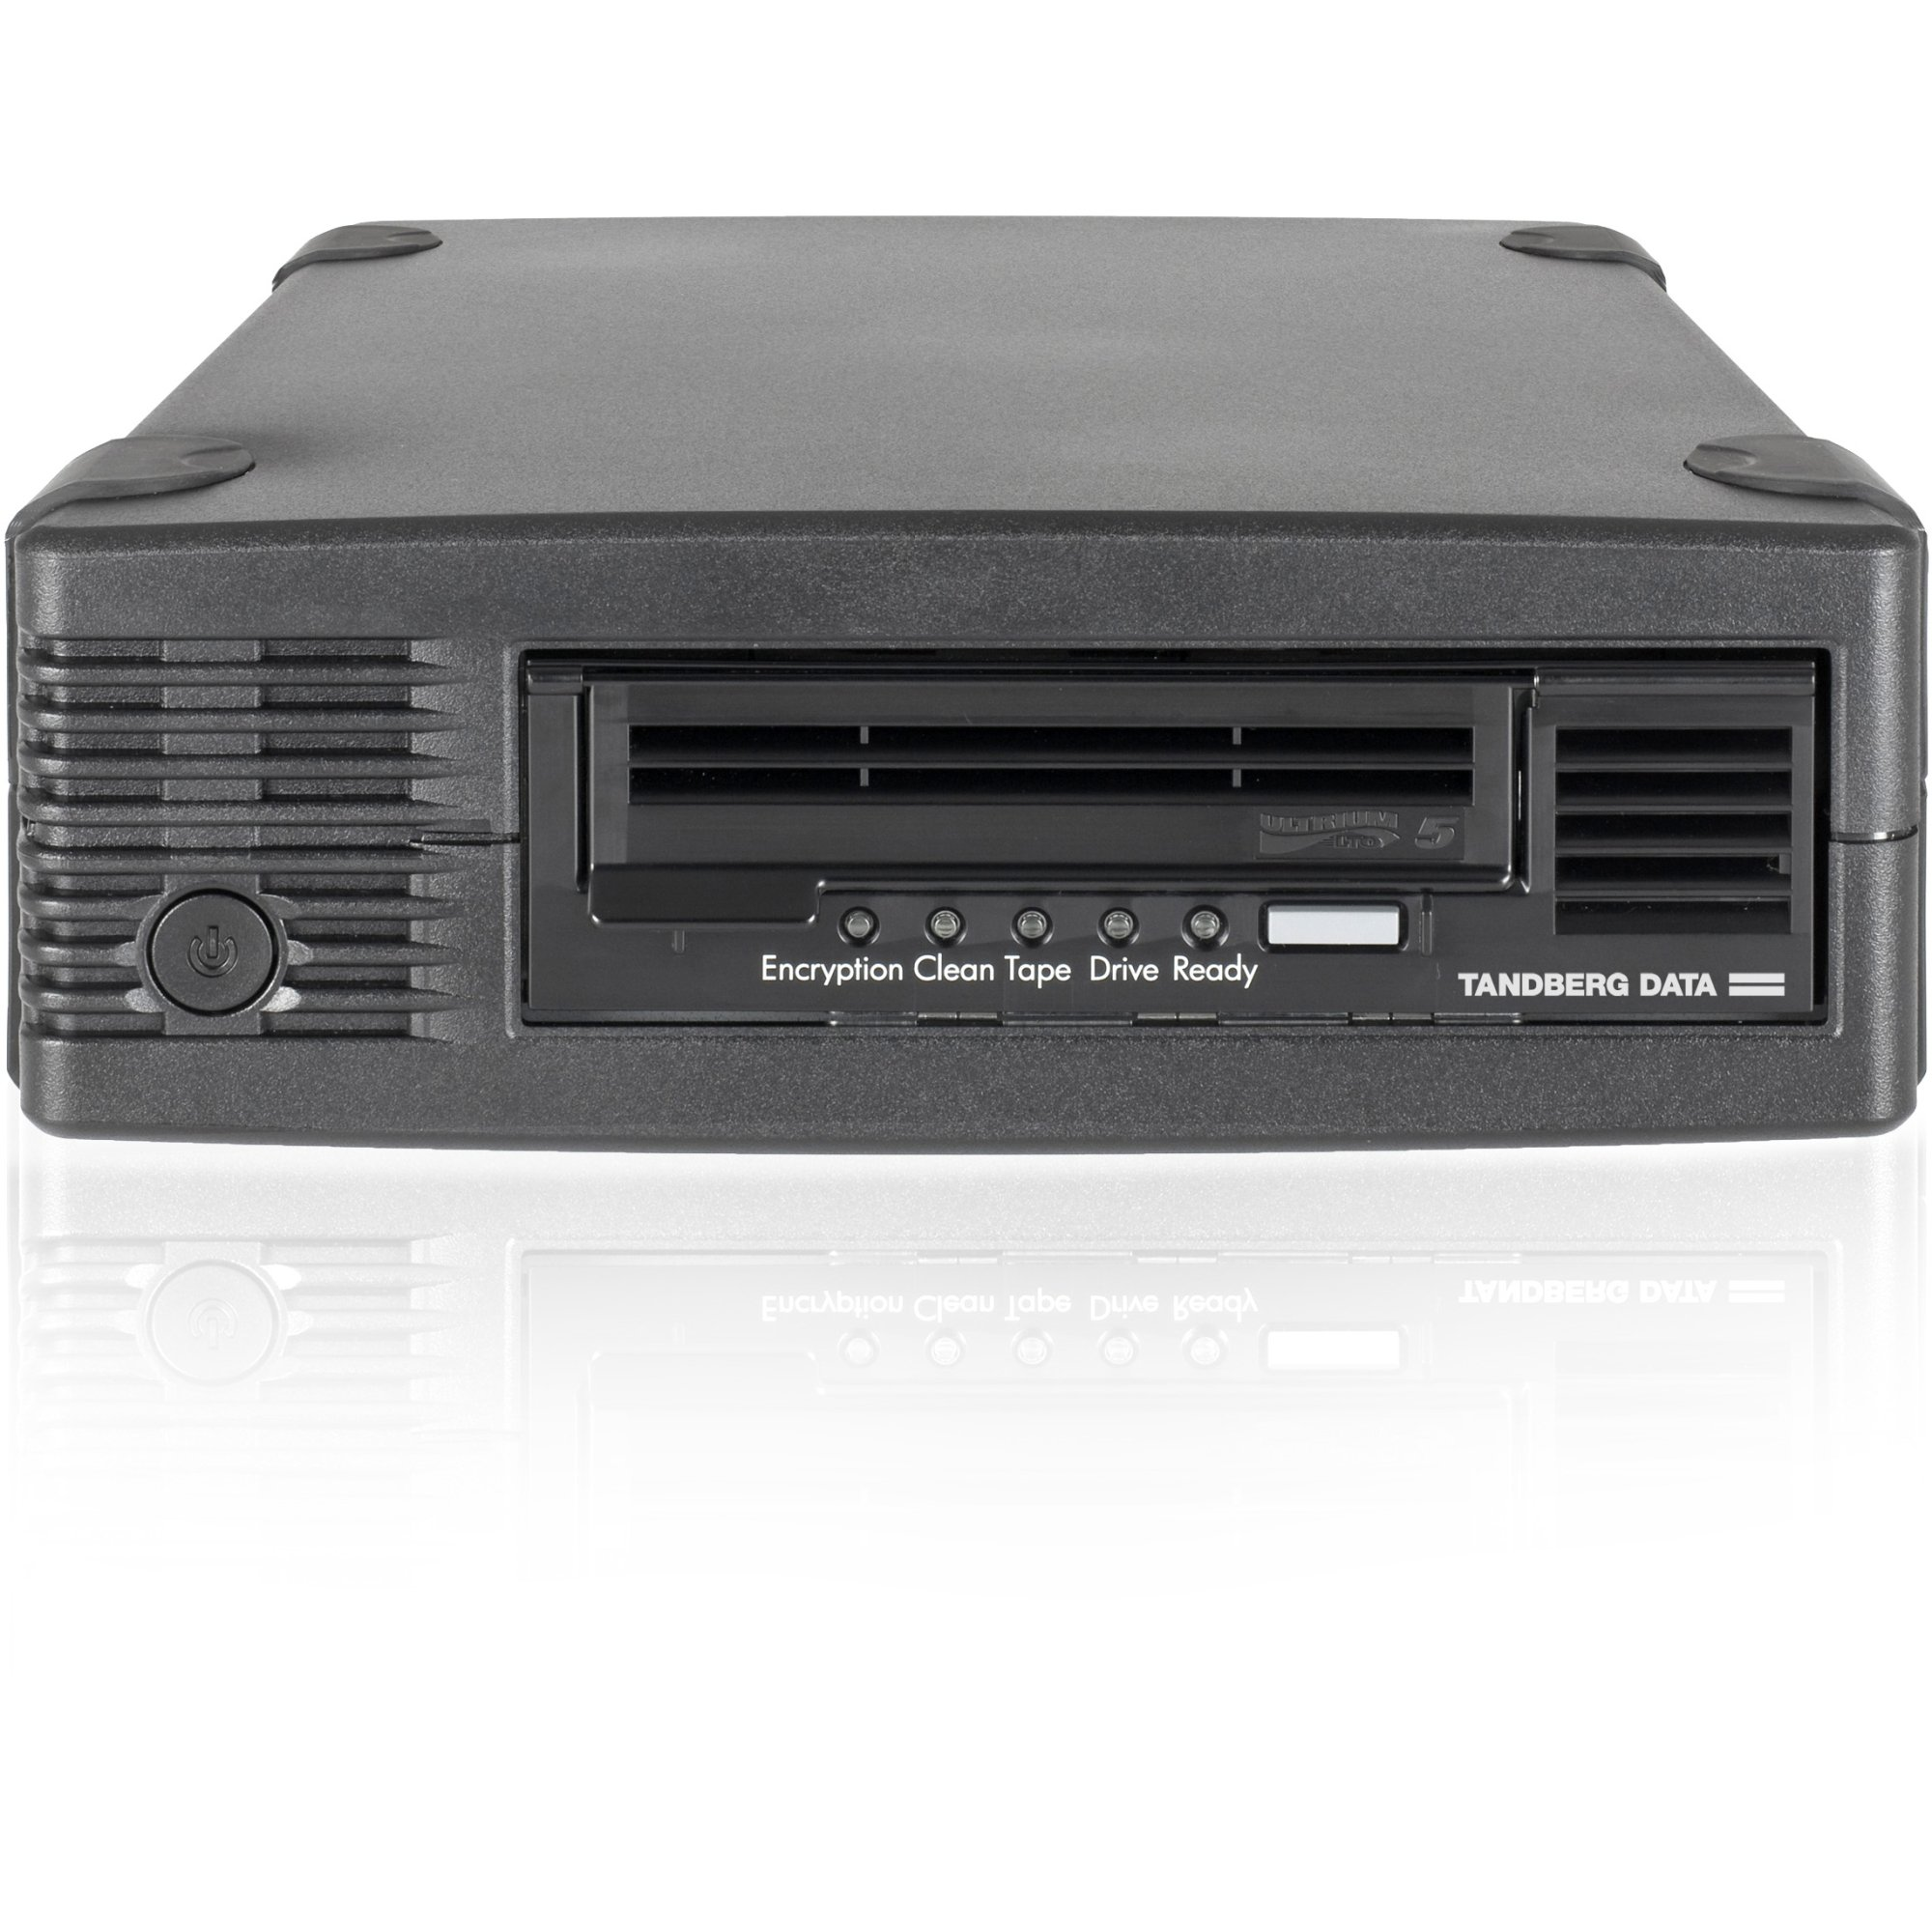 TANDBERG DATA 3520-LTO-KIT / LTO-5 HH Ext. Drive Kit /LTO-5 - 3 TB (Native)/1.50 TB (Compressed) - Black - 6Gb/s SAS1/2H Height - External - 140 MBps Native - 280 MBps Compressed - Encryption - WORM Support